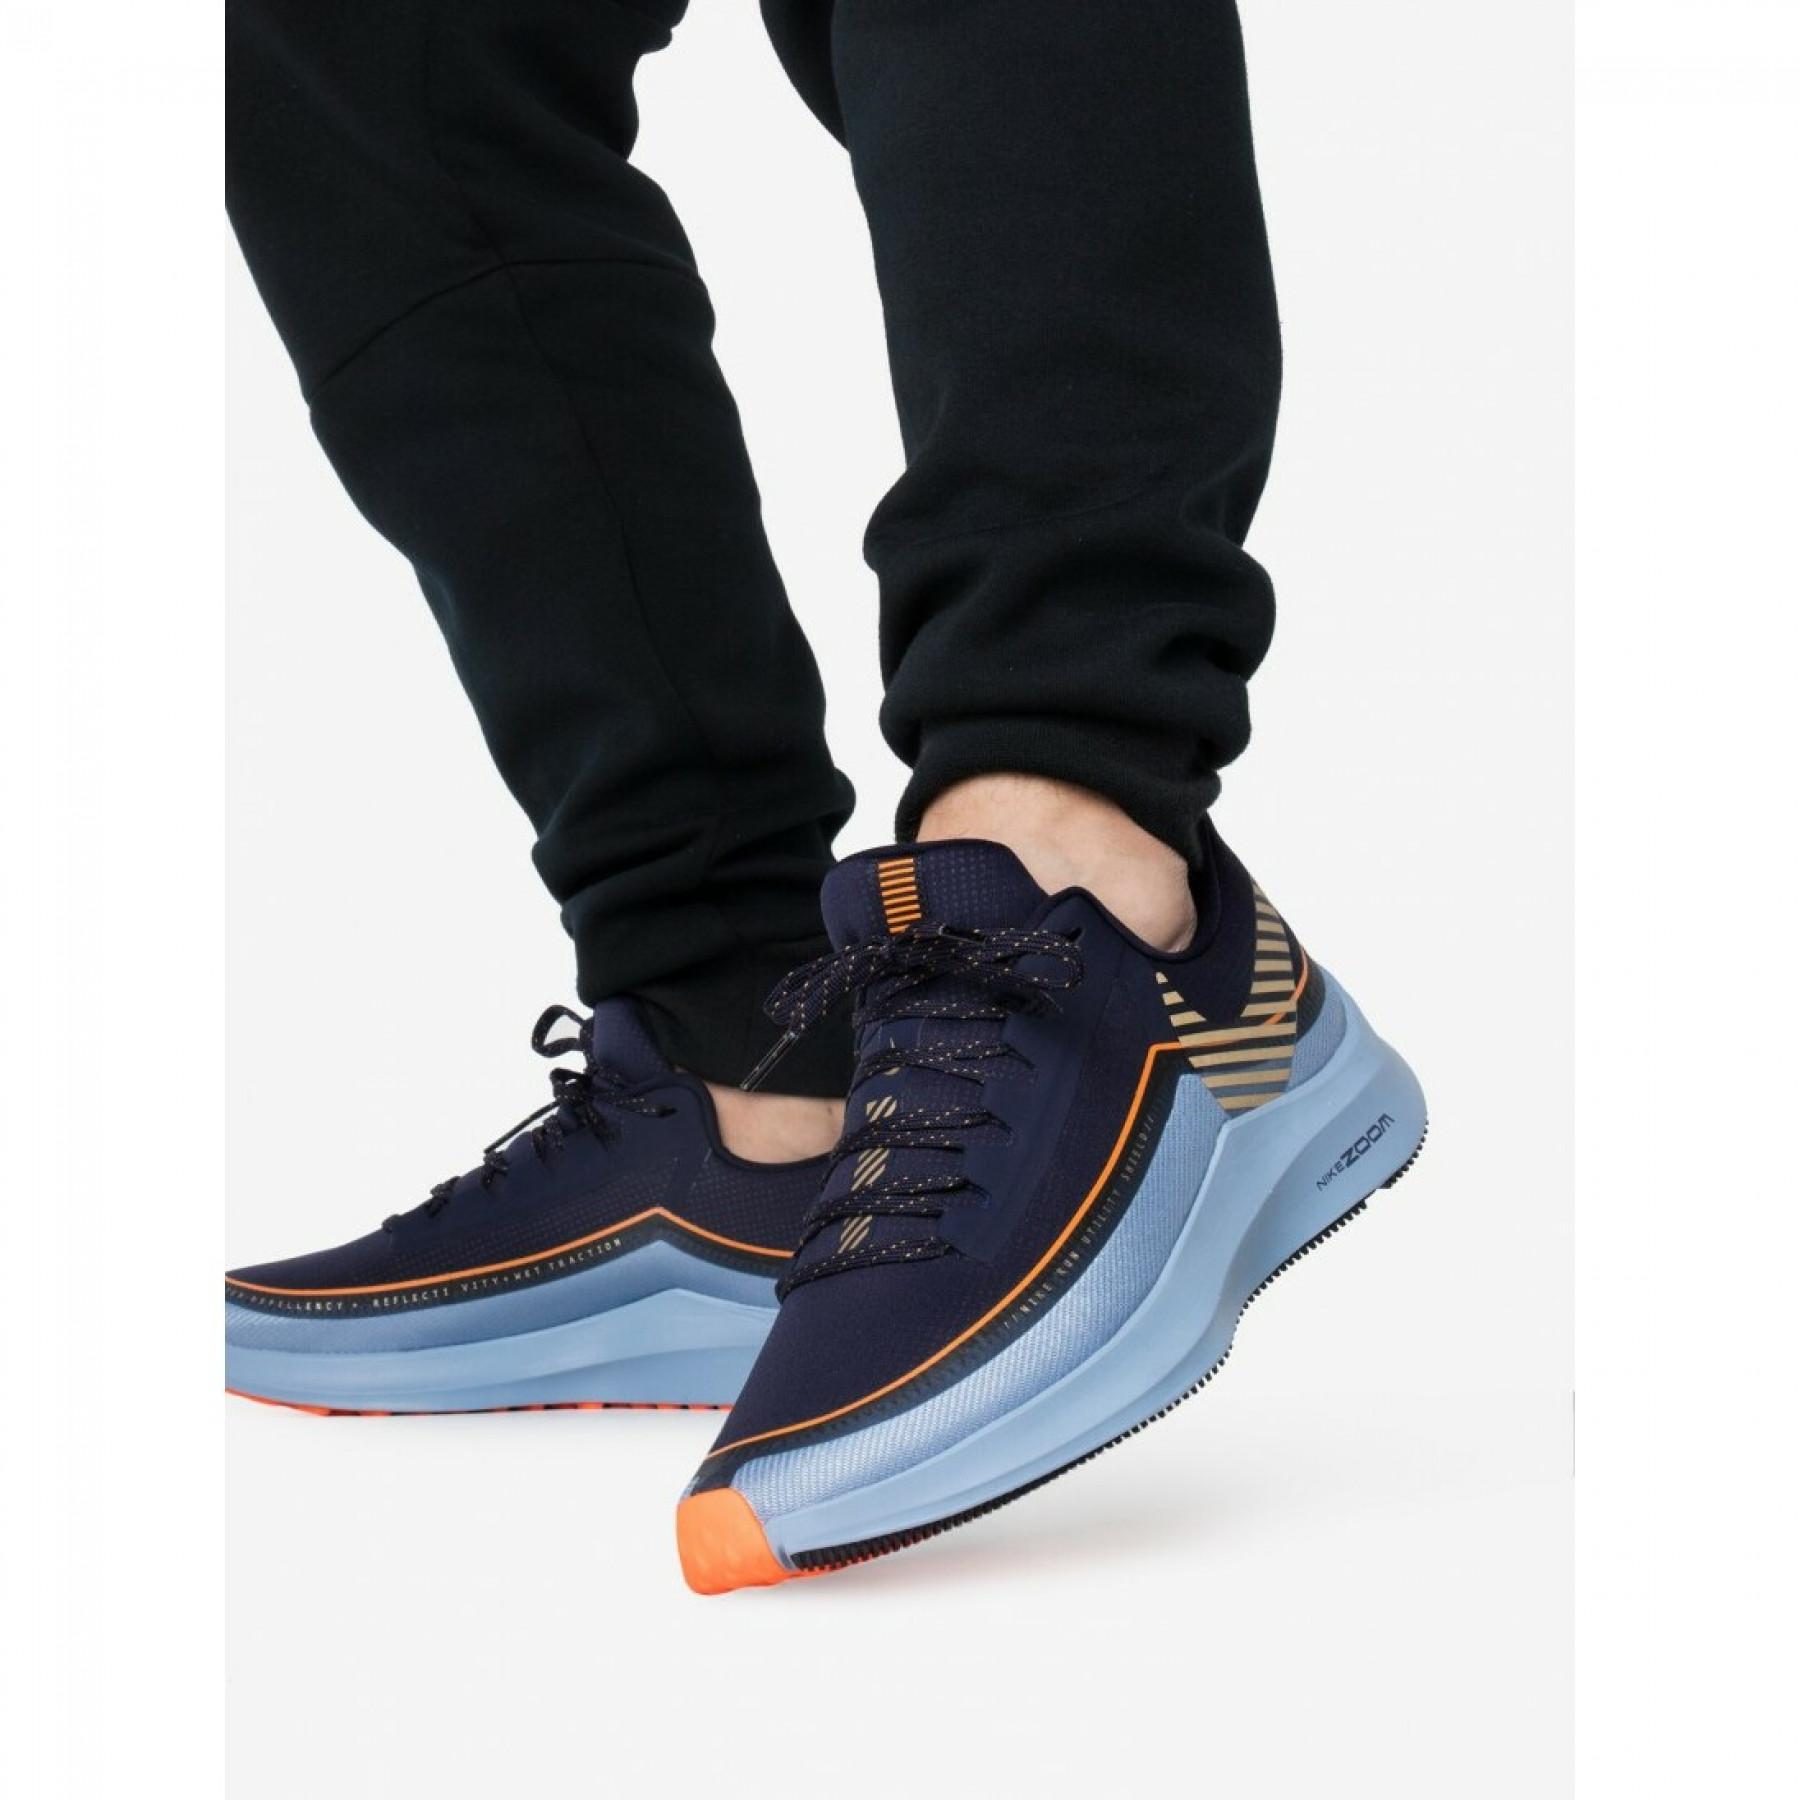 Chaussures Nike Air Zoom Winflo 6 Shield